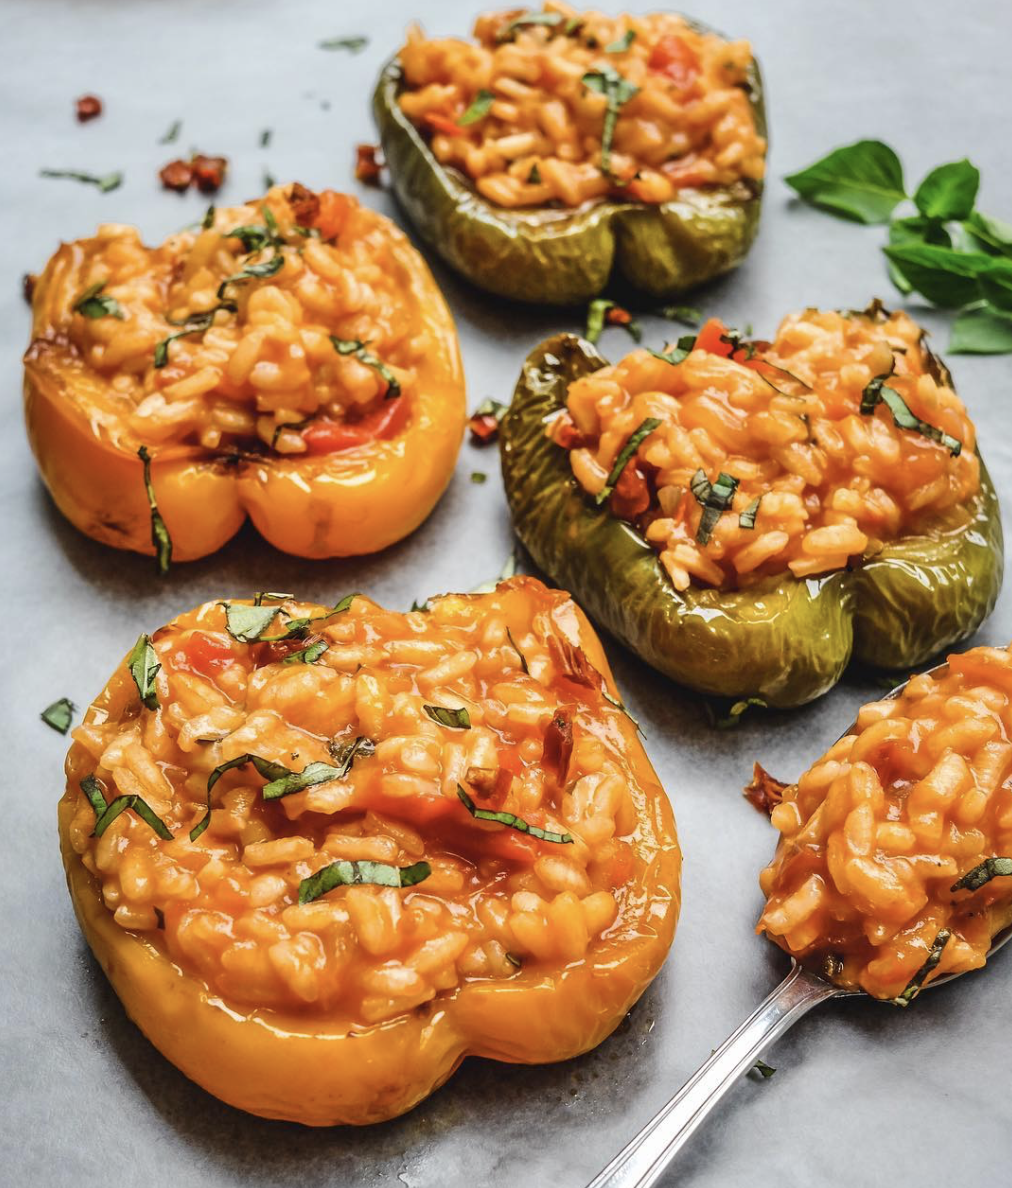 Tomato and Basil Risotto Stuffed Peppers